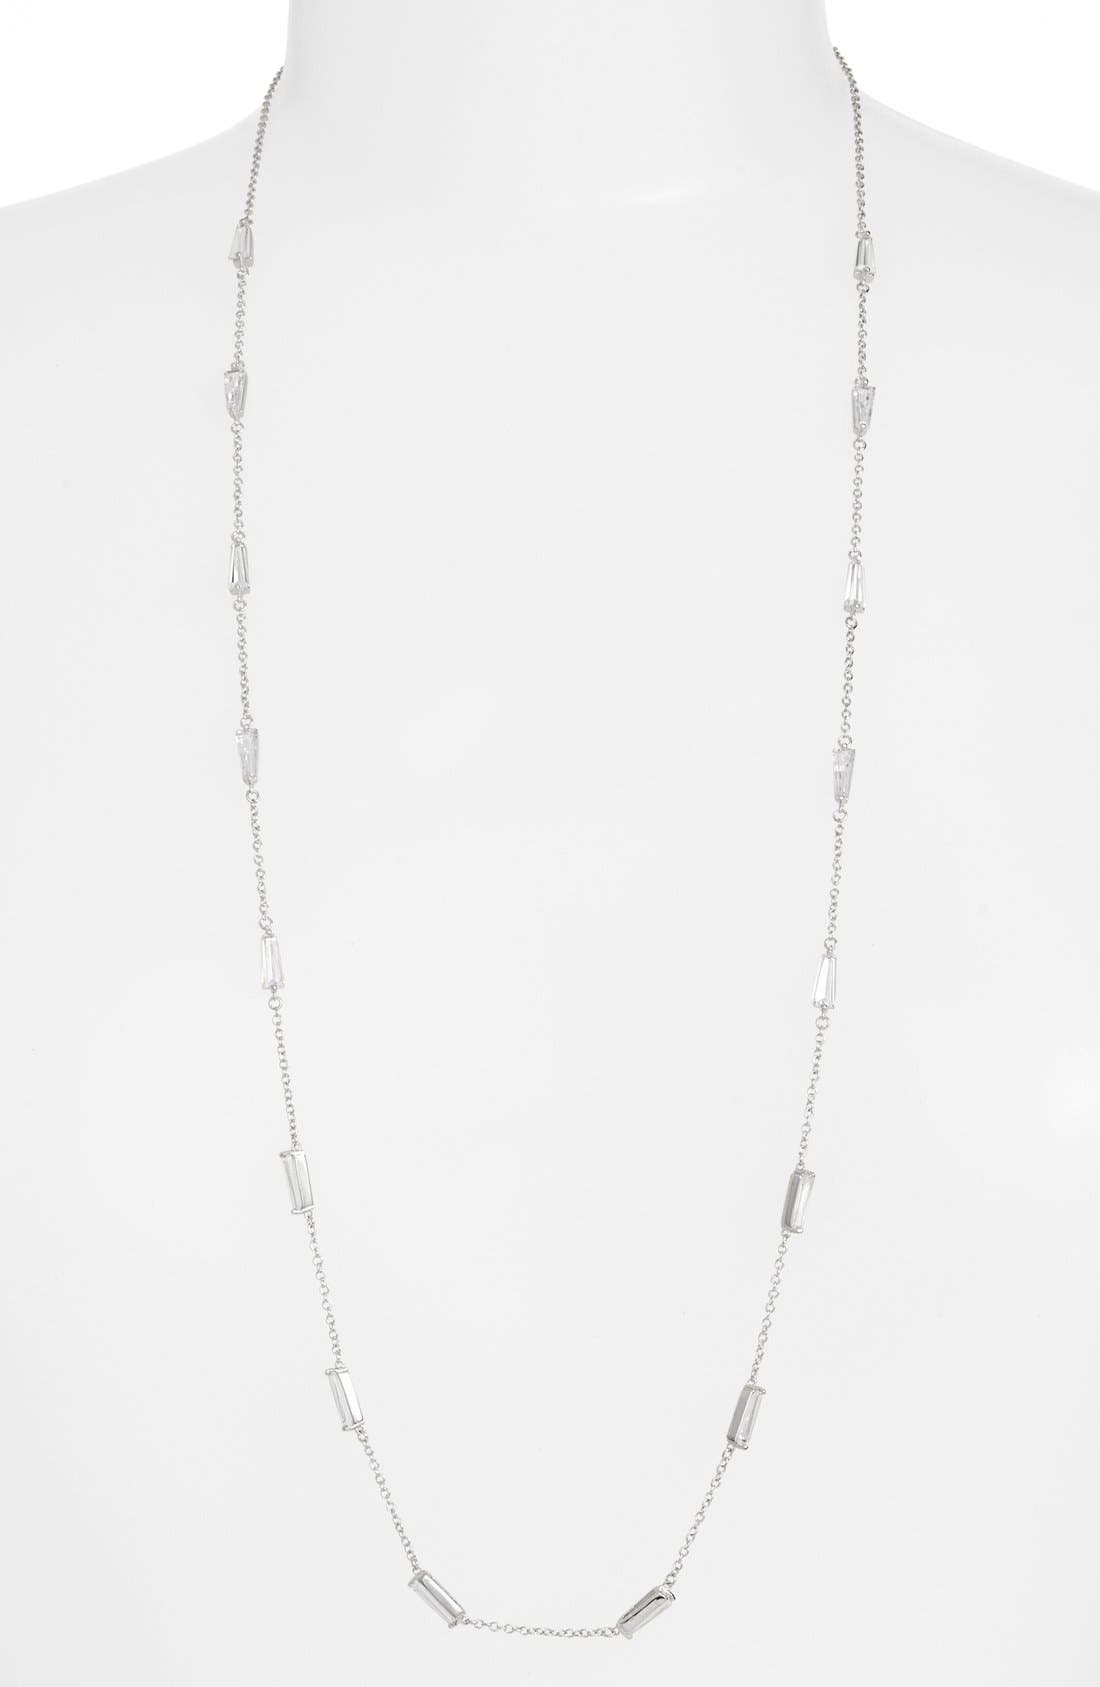 Long Baguette Cubic Zirconia Station Necklace,                         Main,                         color, Silver